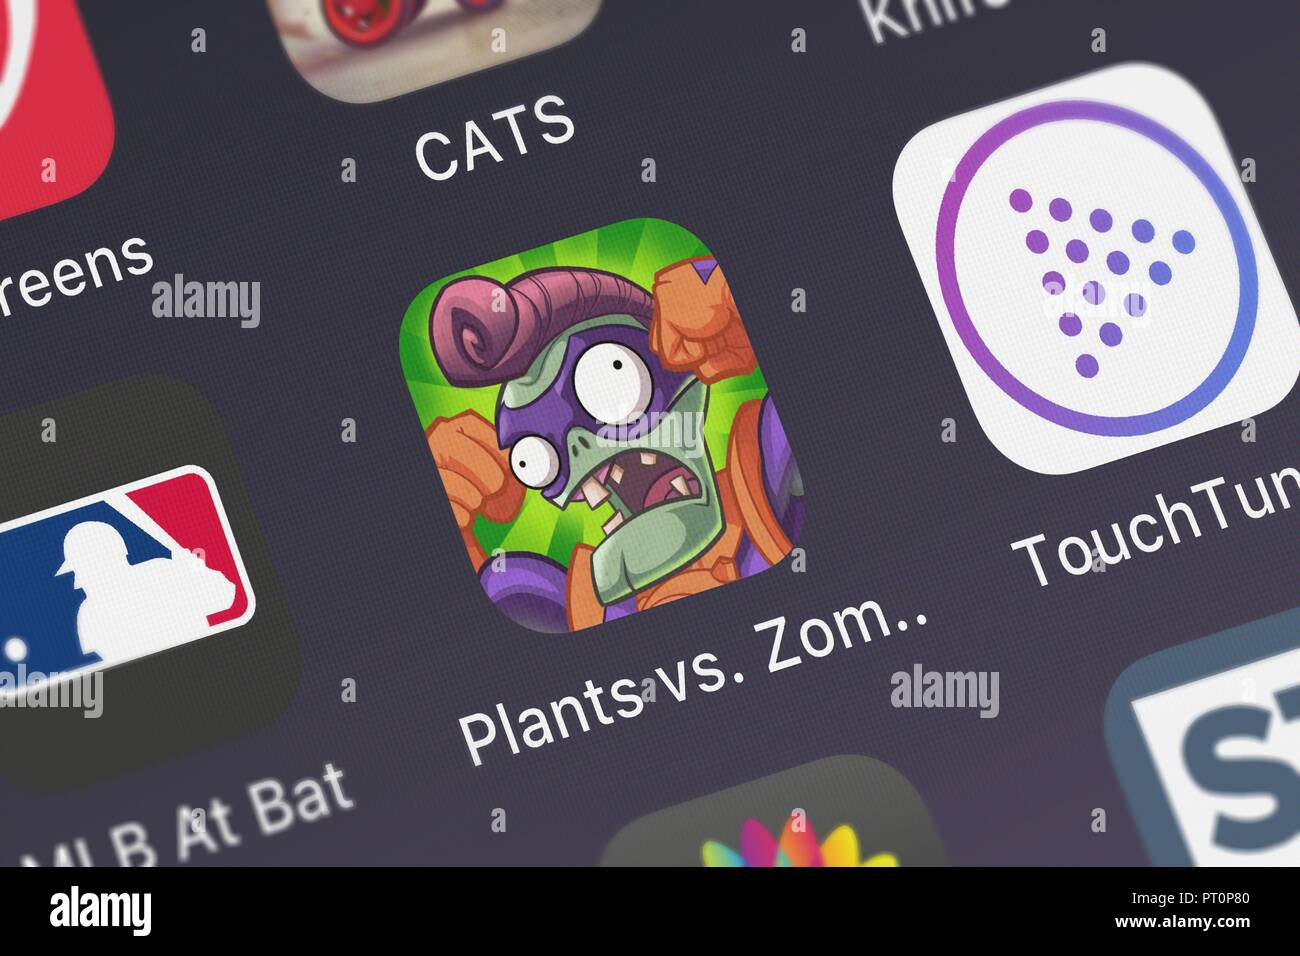 Londres, Royaume-Uni - Octobre 05, 2018 : Close-up shot of Electronic Arts populaires de l'app Plants vs. Zombies™ des héros. Banque D'Images